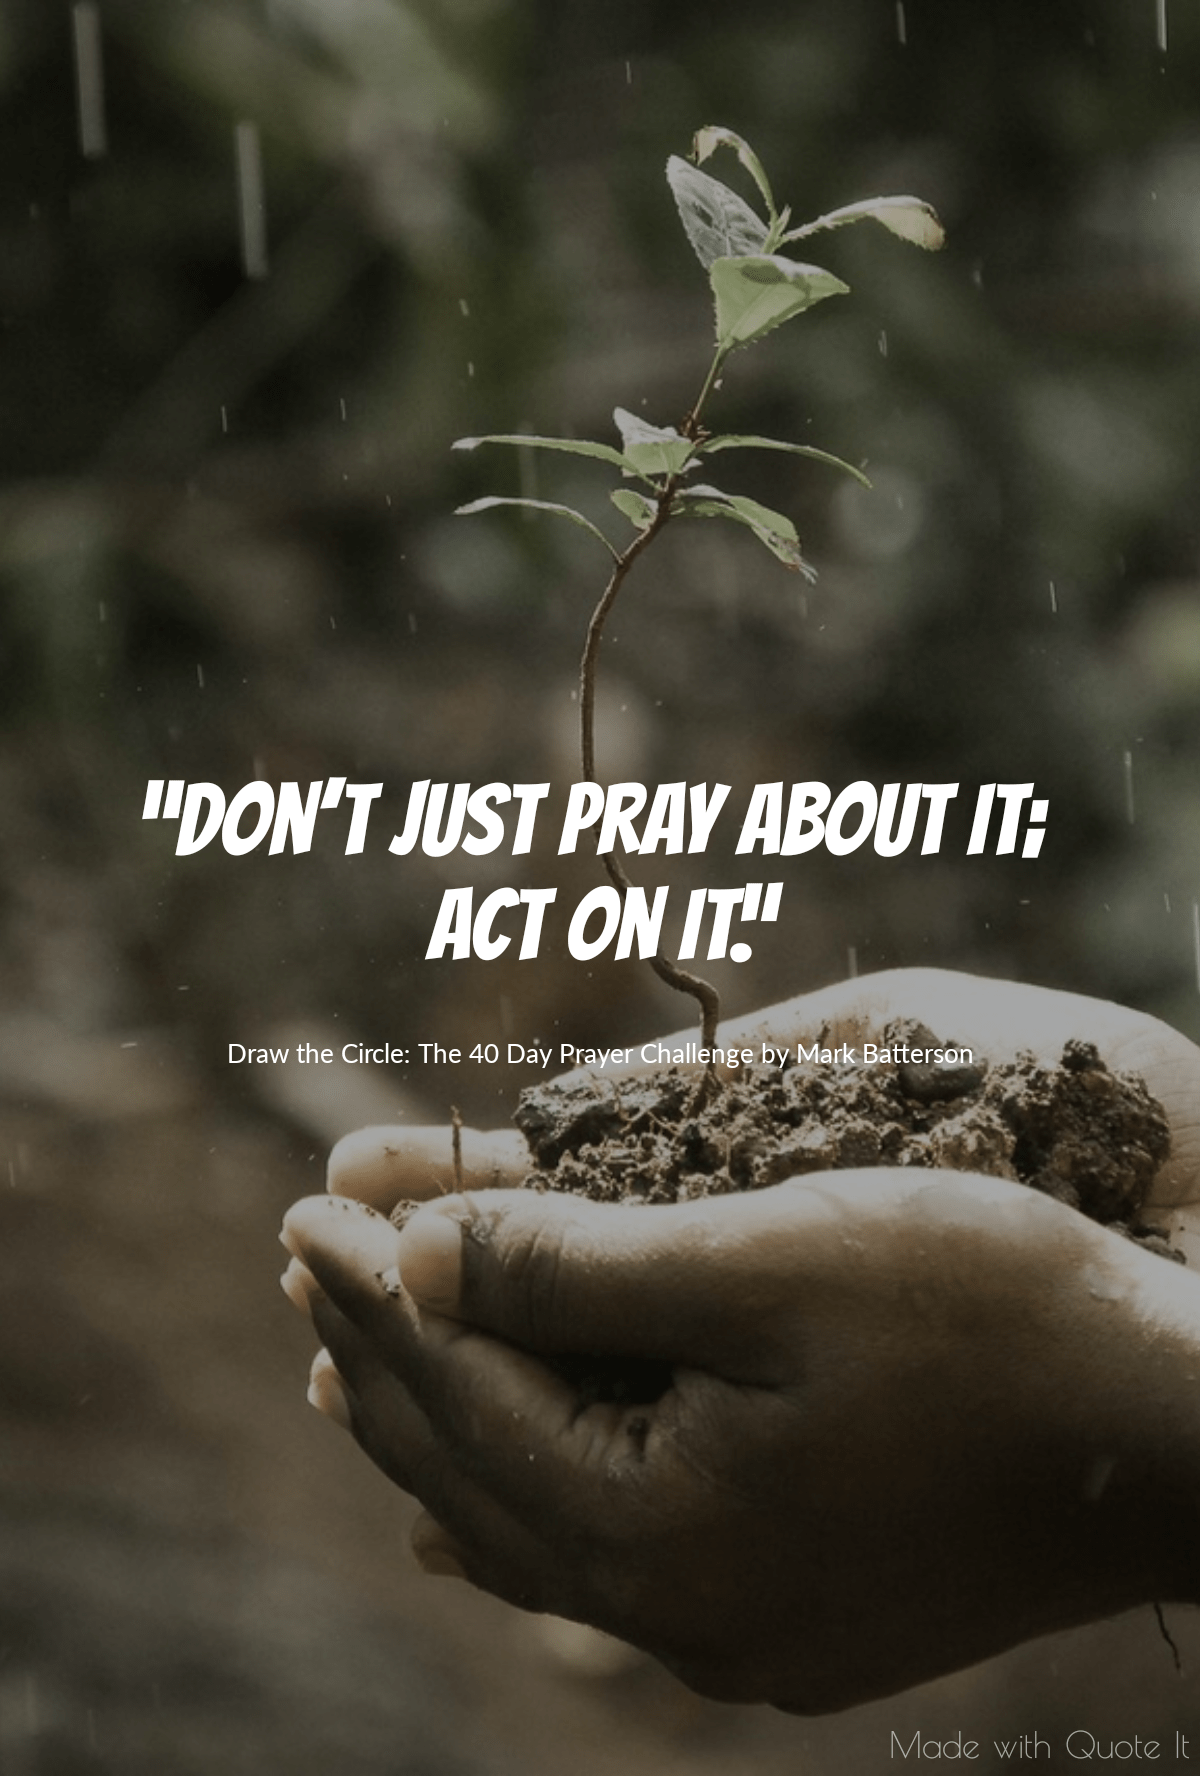 """Don't just pray about it; act on it."" - Draw the Circle: The 40 Day Prayer Challenge by Mark Batterson"